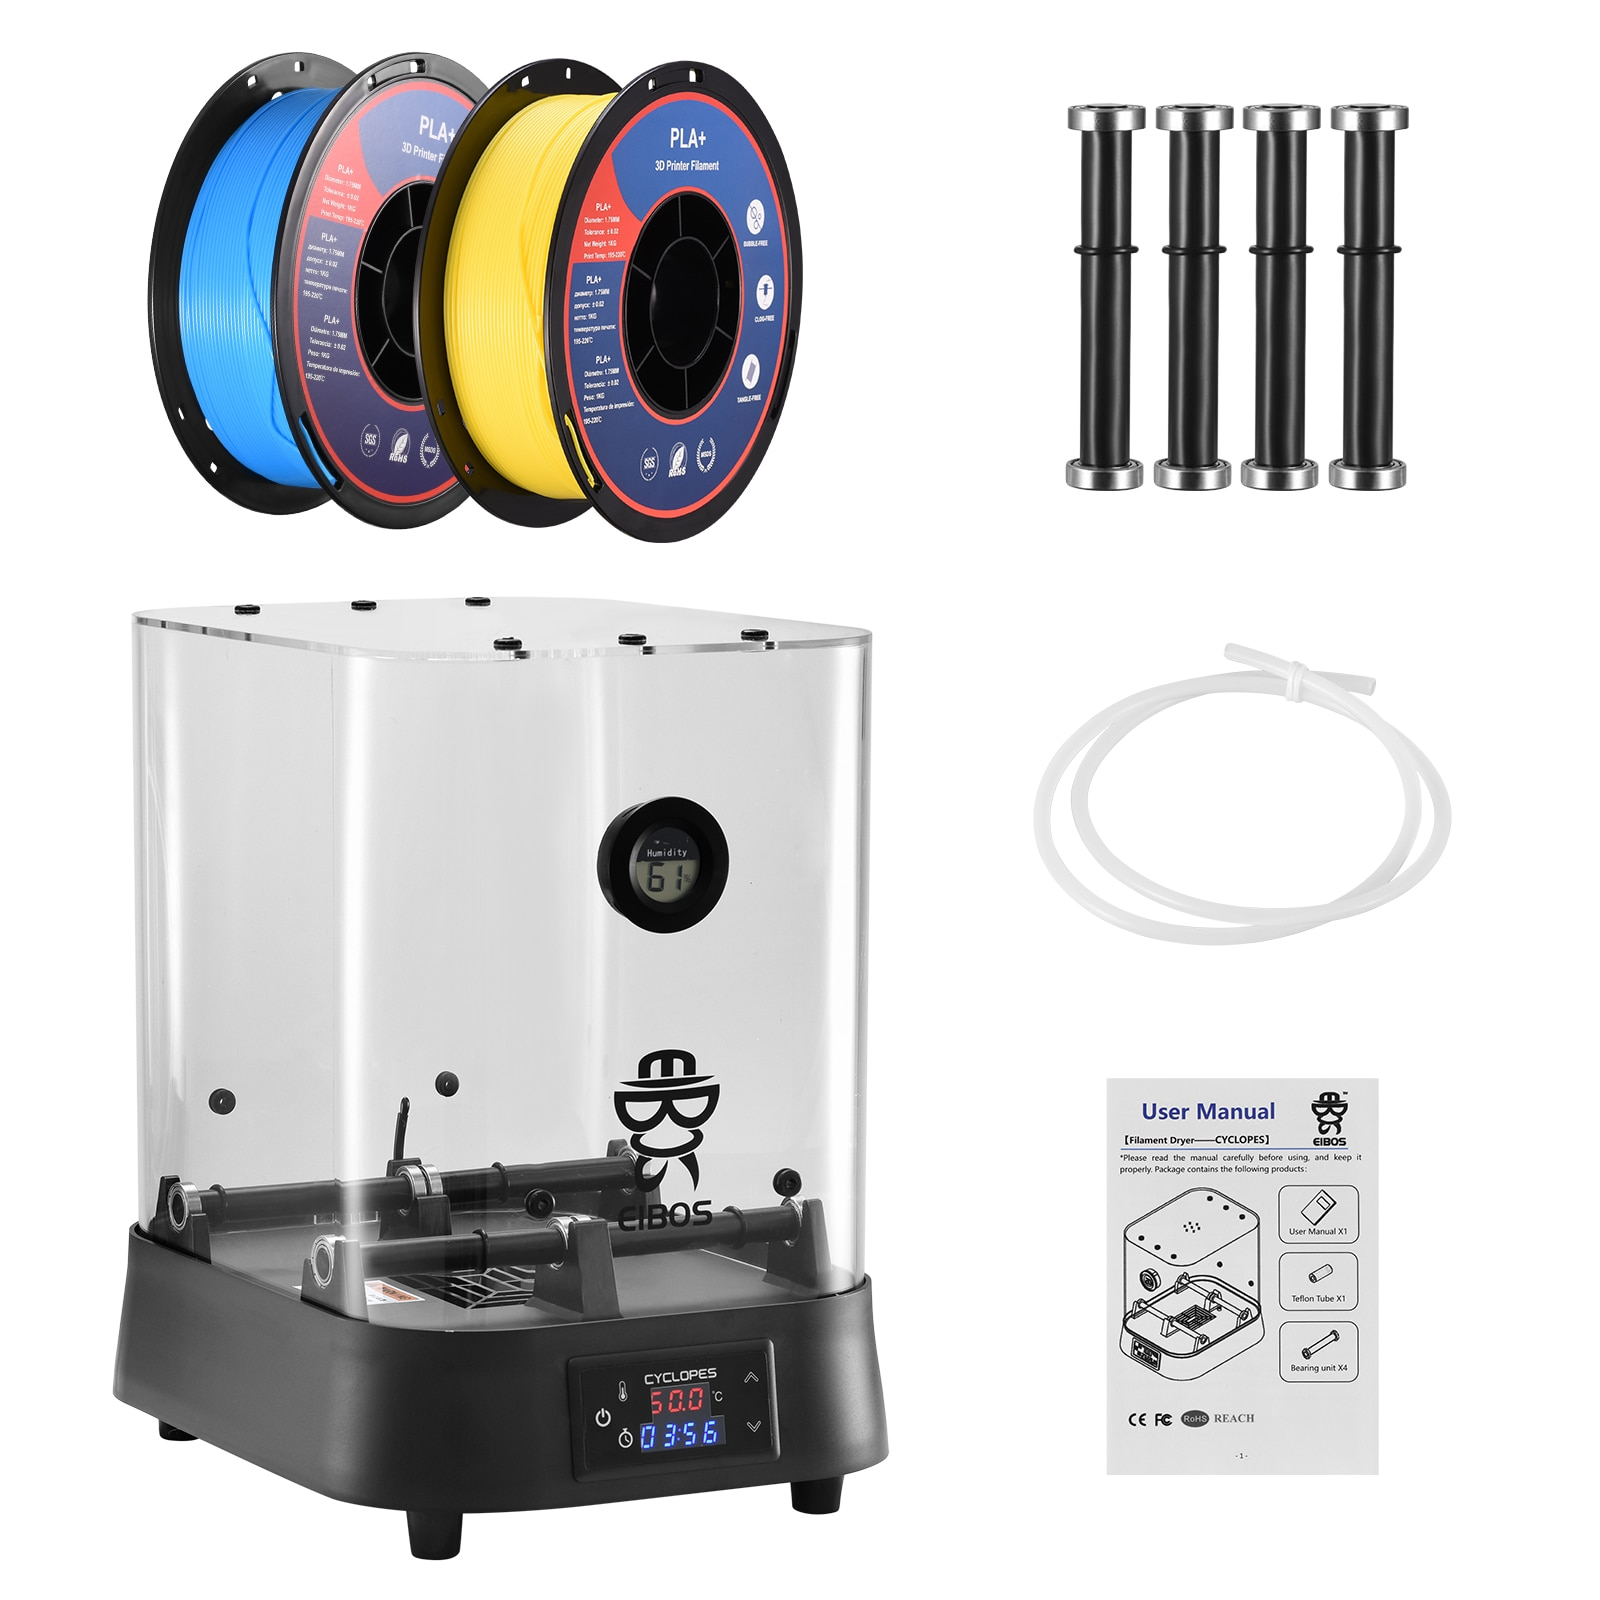 Extra Large Dry Box Filament Dryer Box Heating Drying Filaments Storage Box For Keeping Filament Dry 2KG Filaments Dryer enlarge